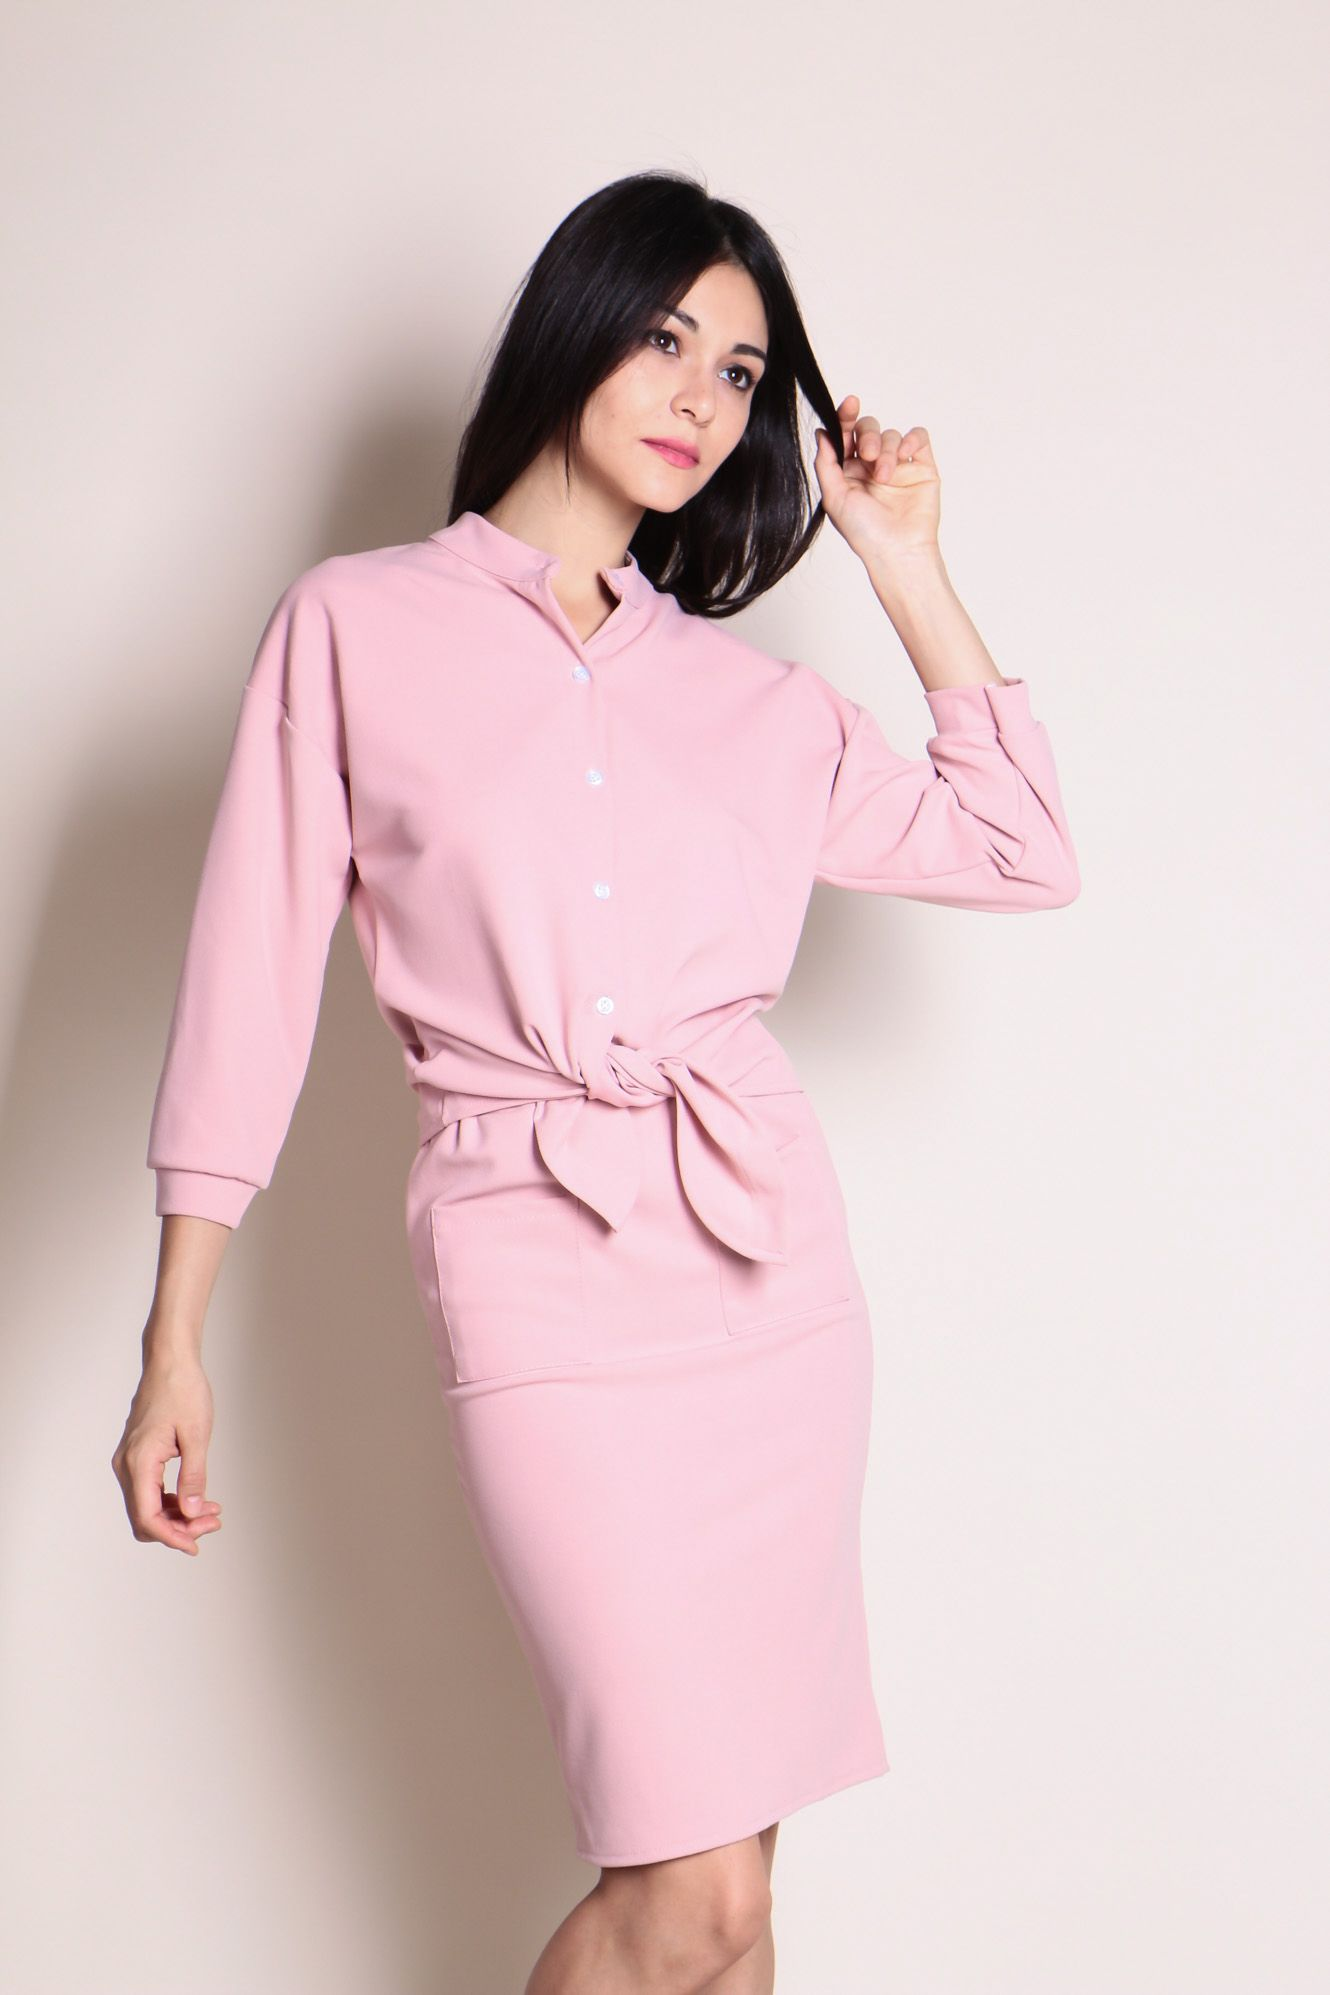 Two Piece Top and Skirt Set (Pink) SGD$ 39.00